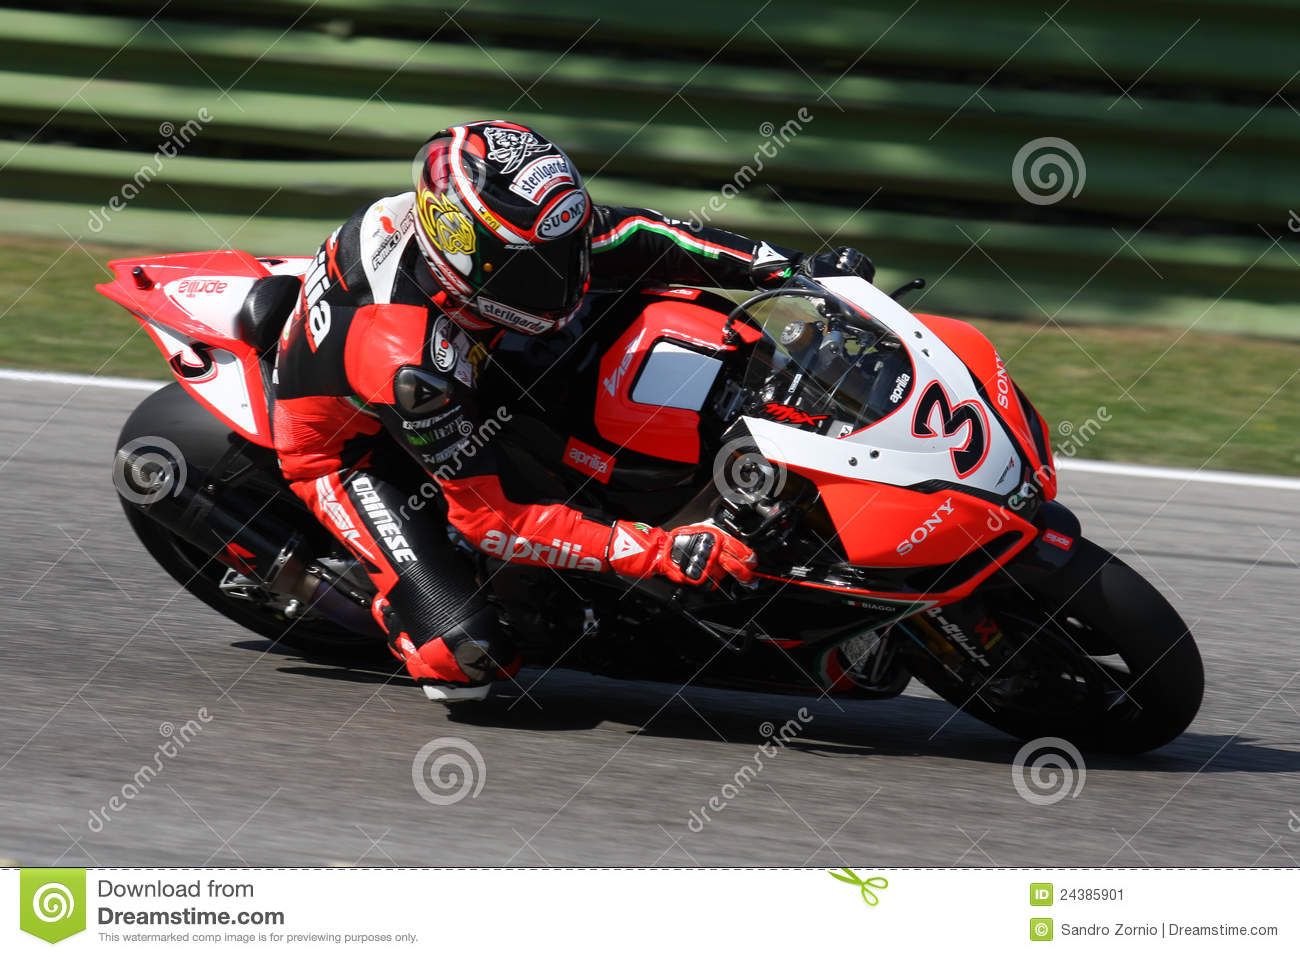 Max biaggi aprilia rsv4 aprilia racing team editorial photo max biaggi aprilia rsv4 aprilia racing team suomy dainese thecheapjerseys Image collections